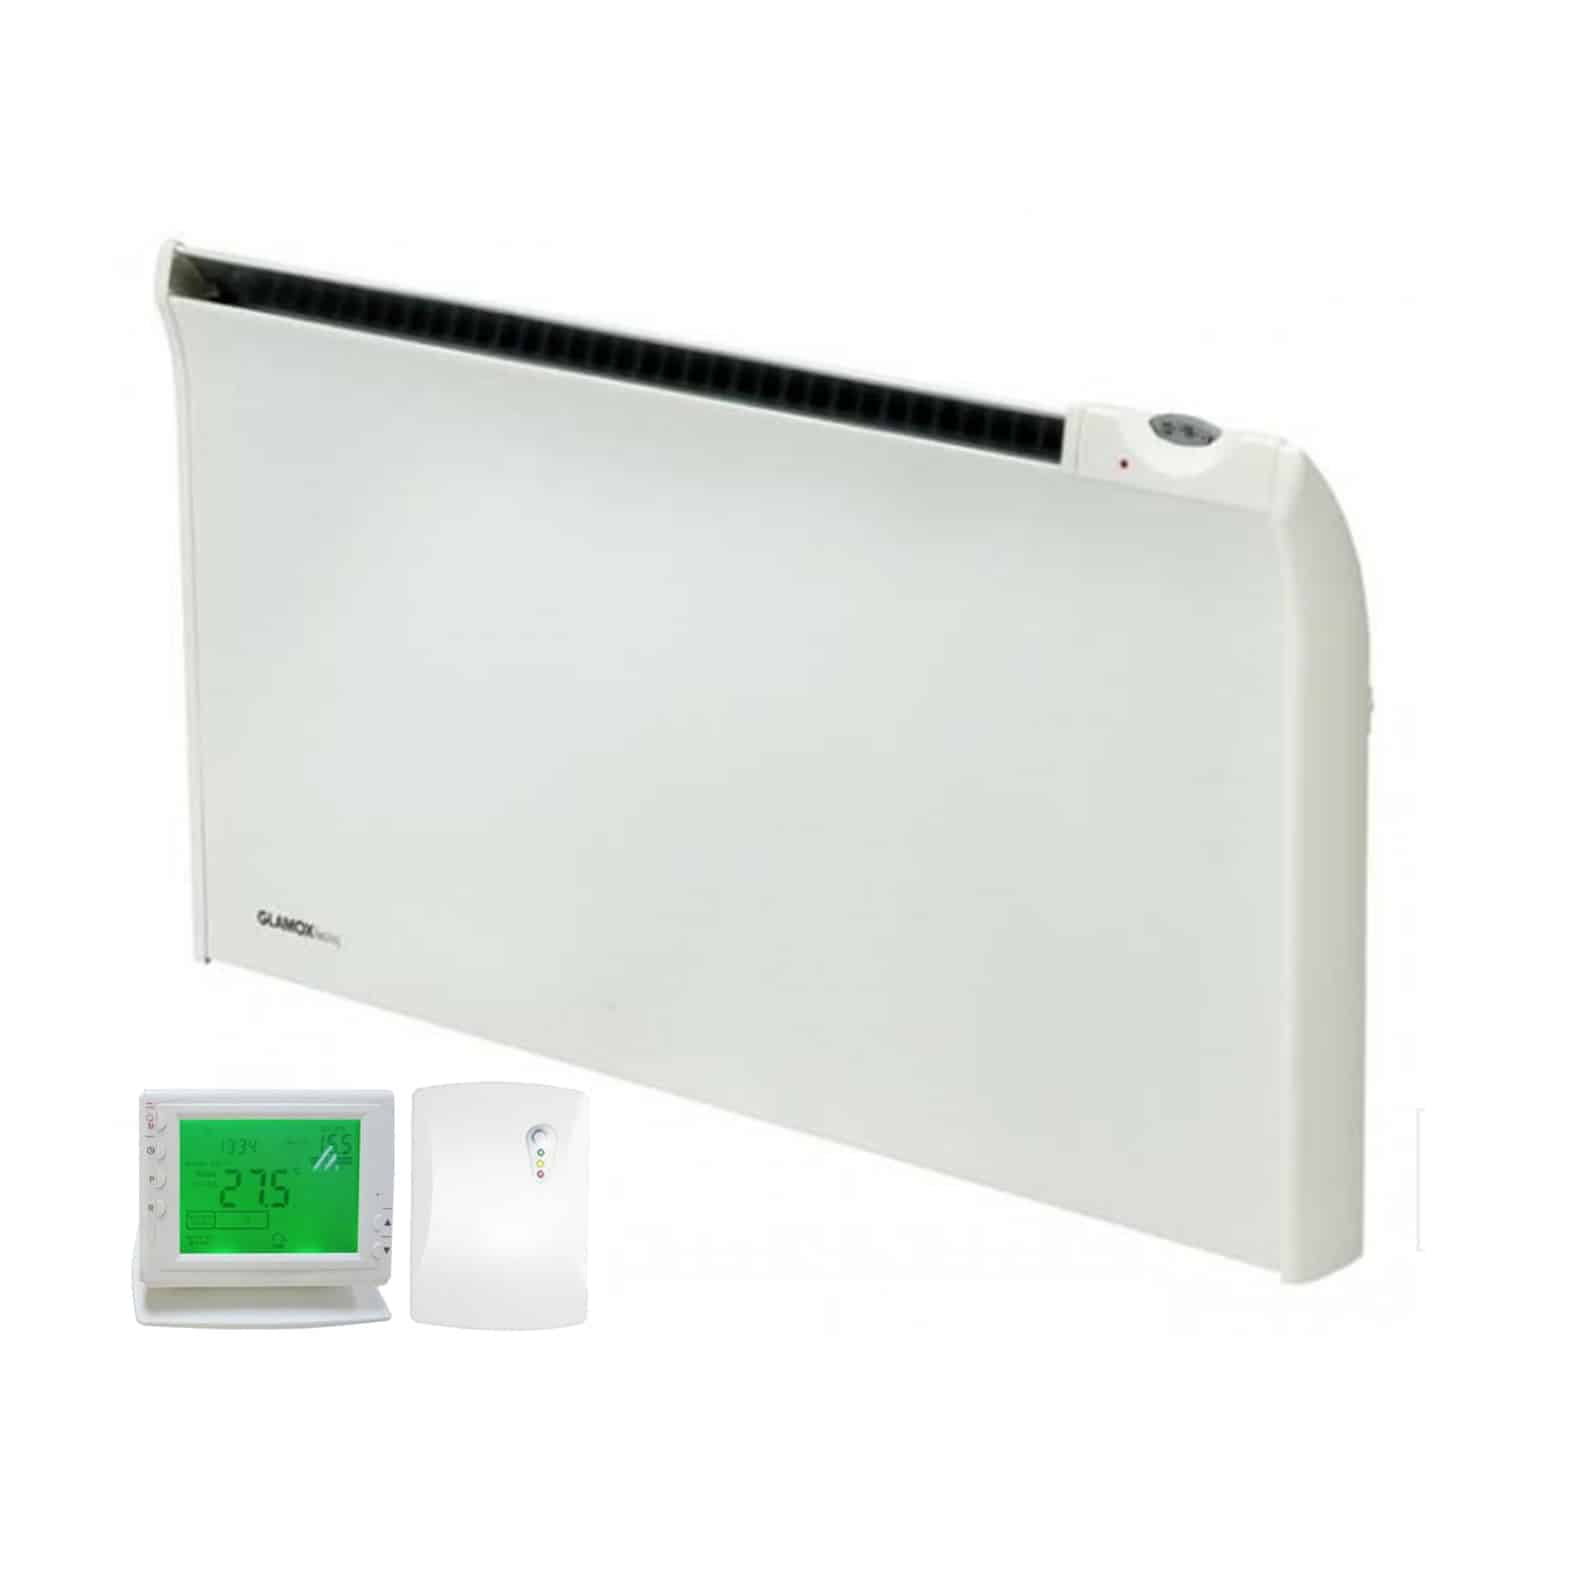 Electric Bathroom Heaters Uk: ADAX NOREL TPVD BATHROOM SAFE ELECTRIC PANEL HEATER WITH